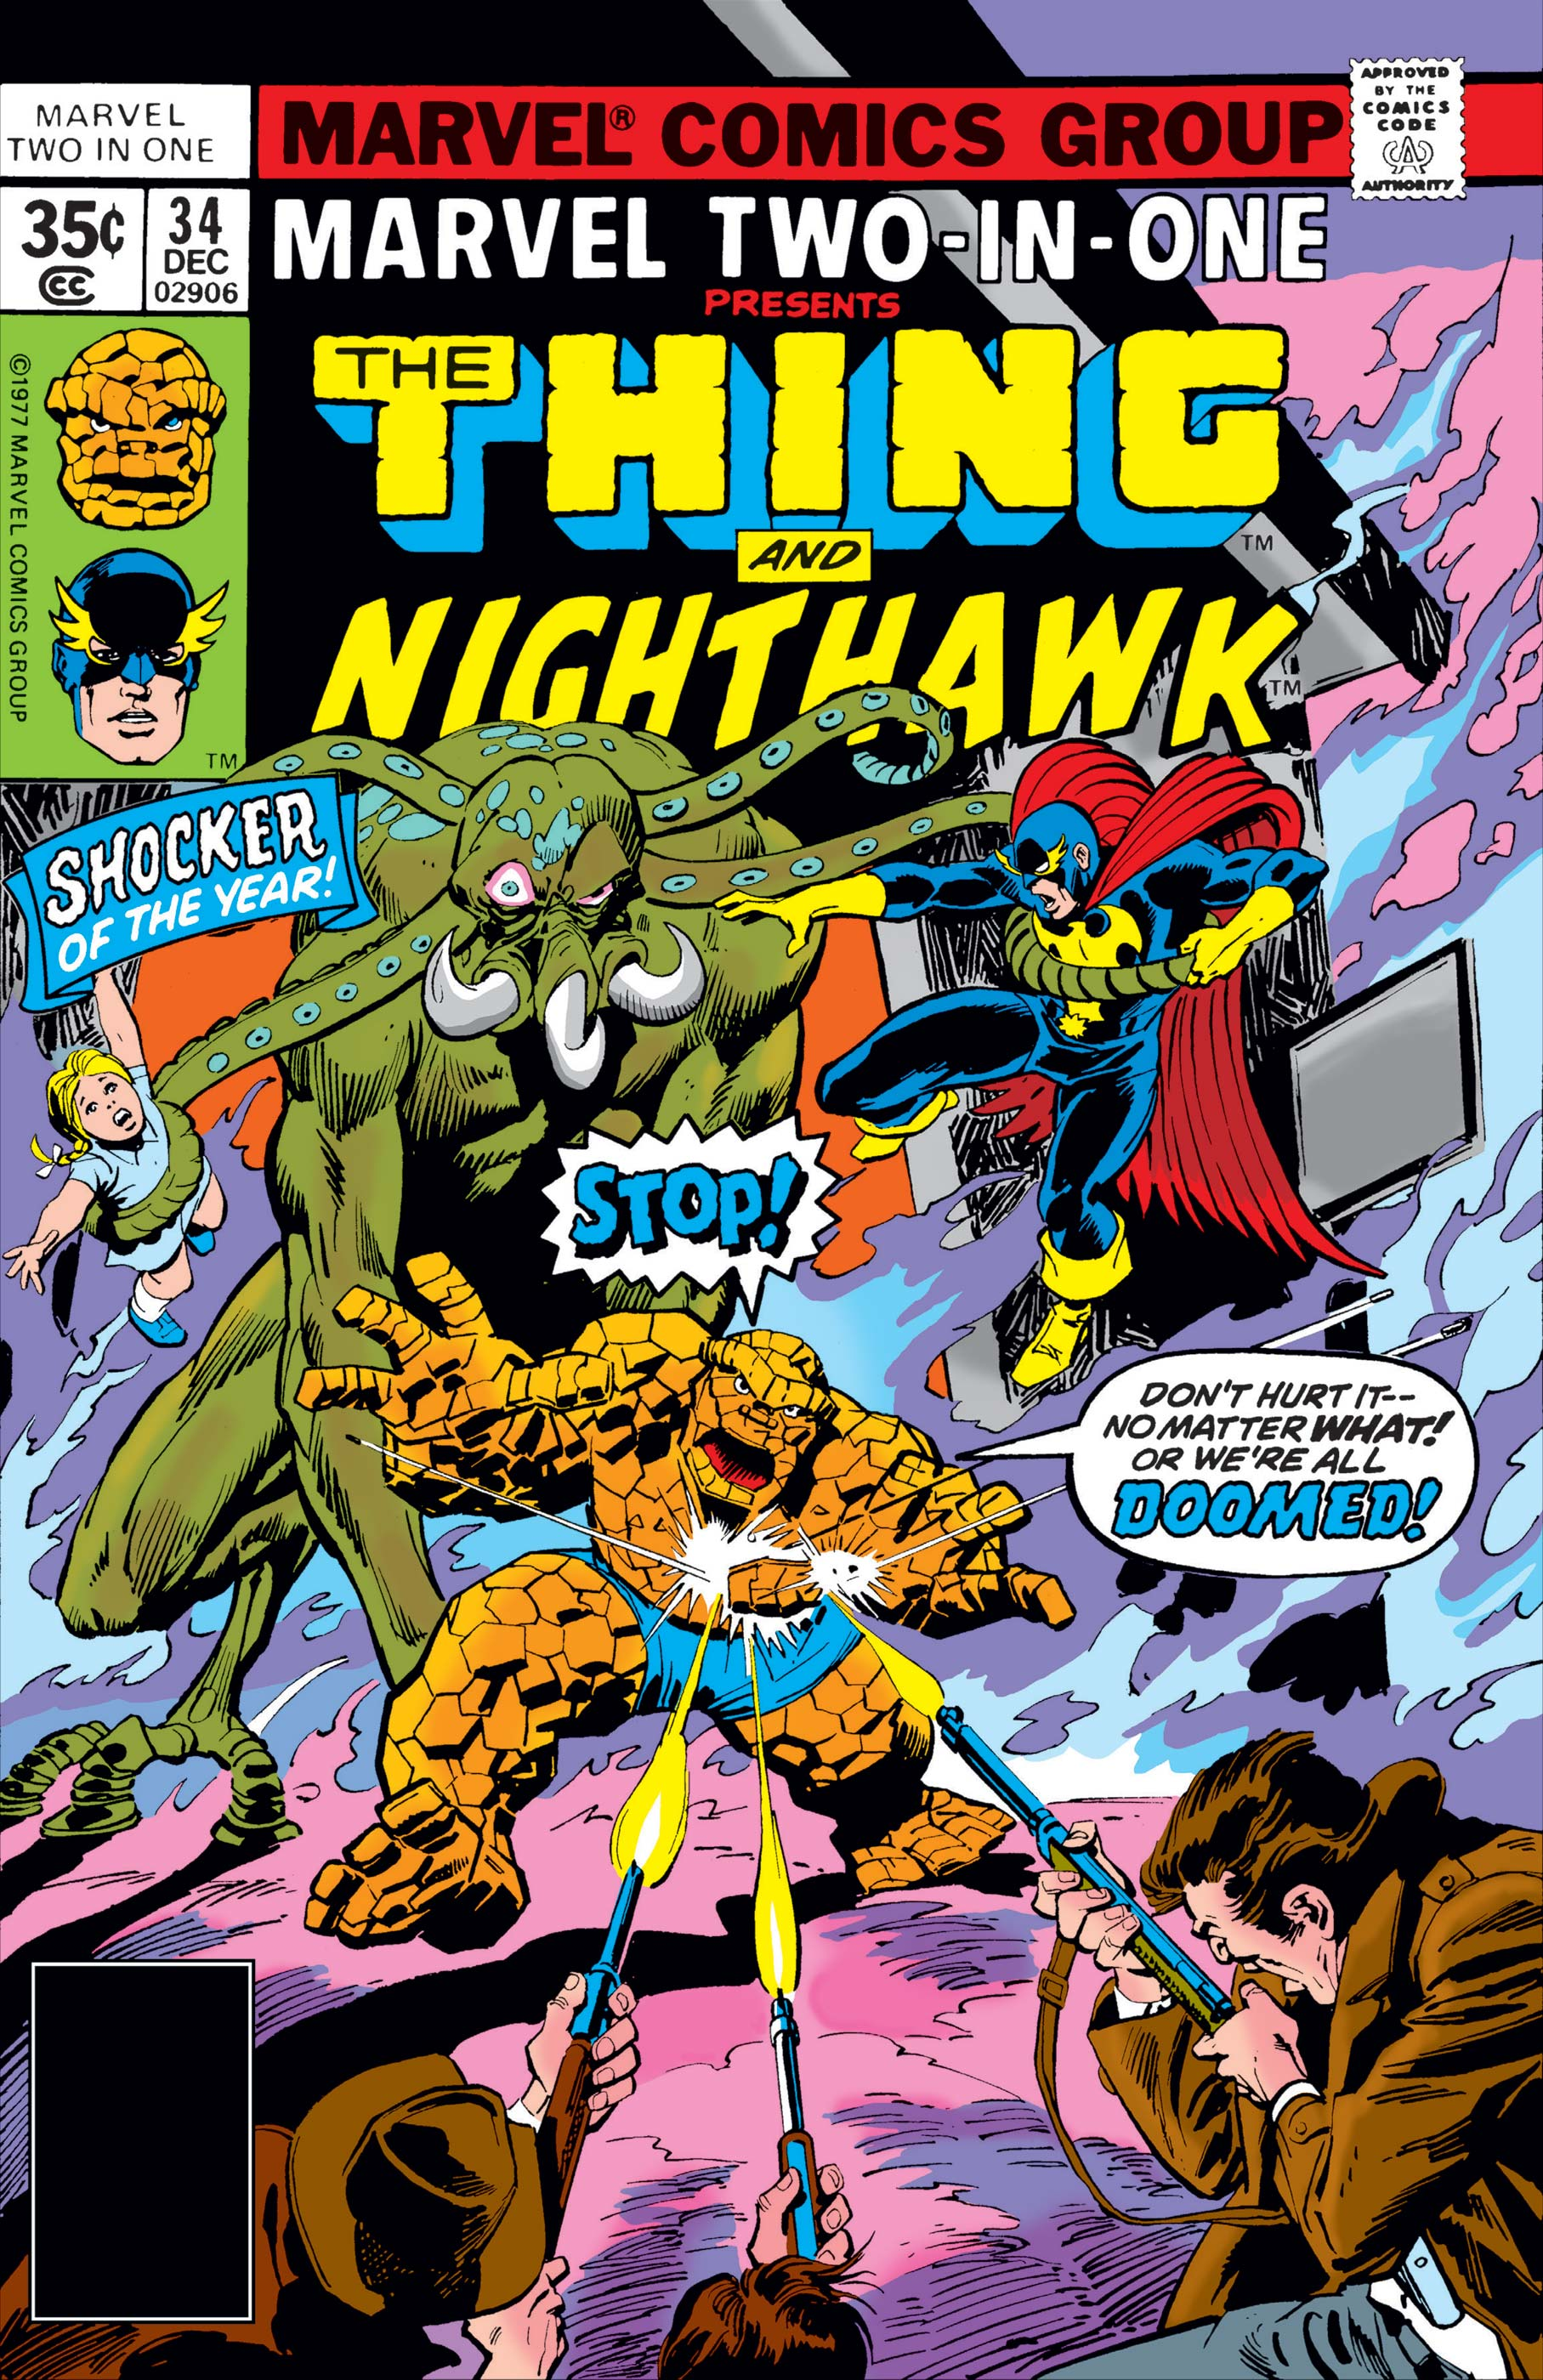 Marvel Two-in-One (1974) #34